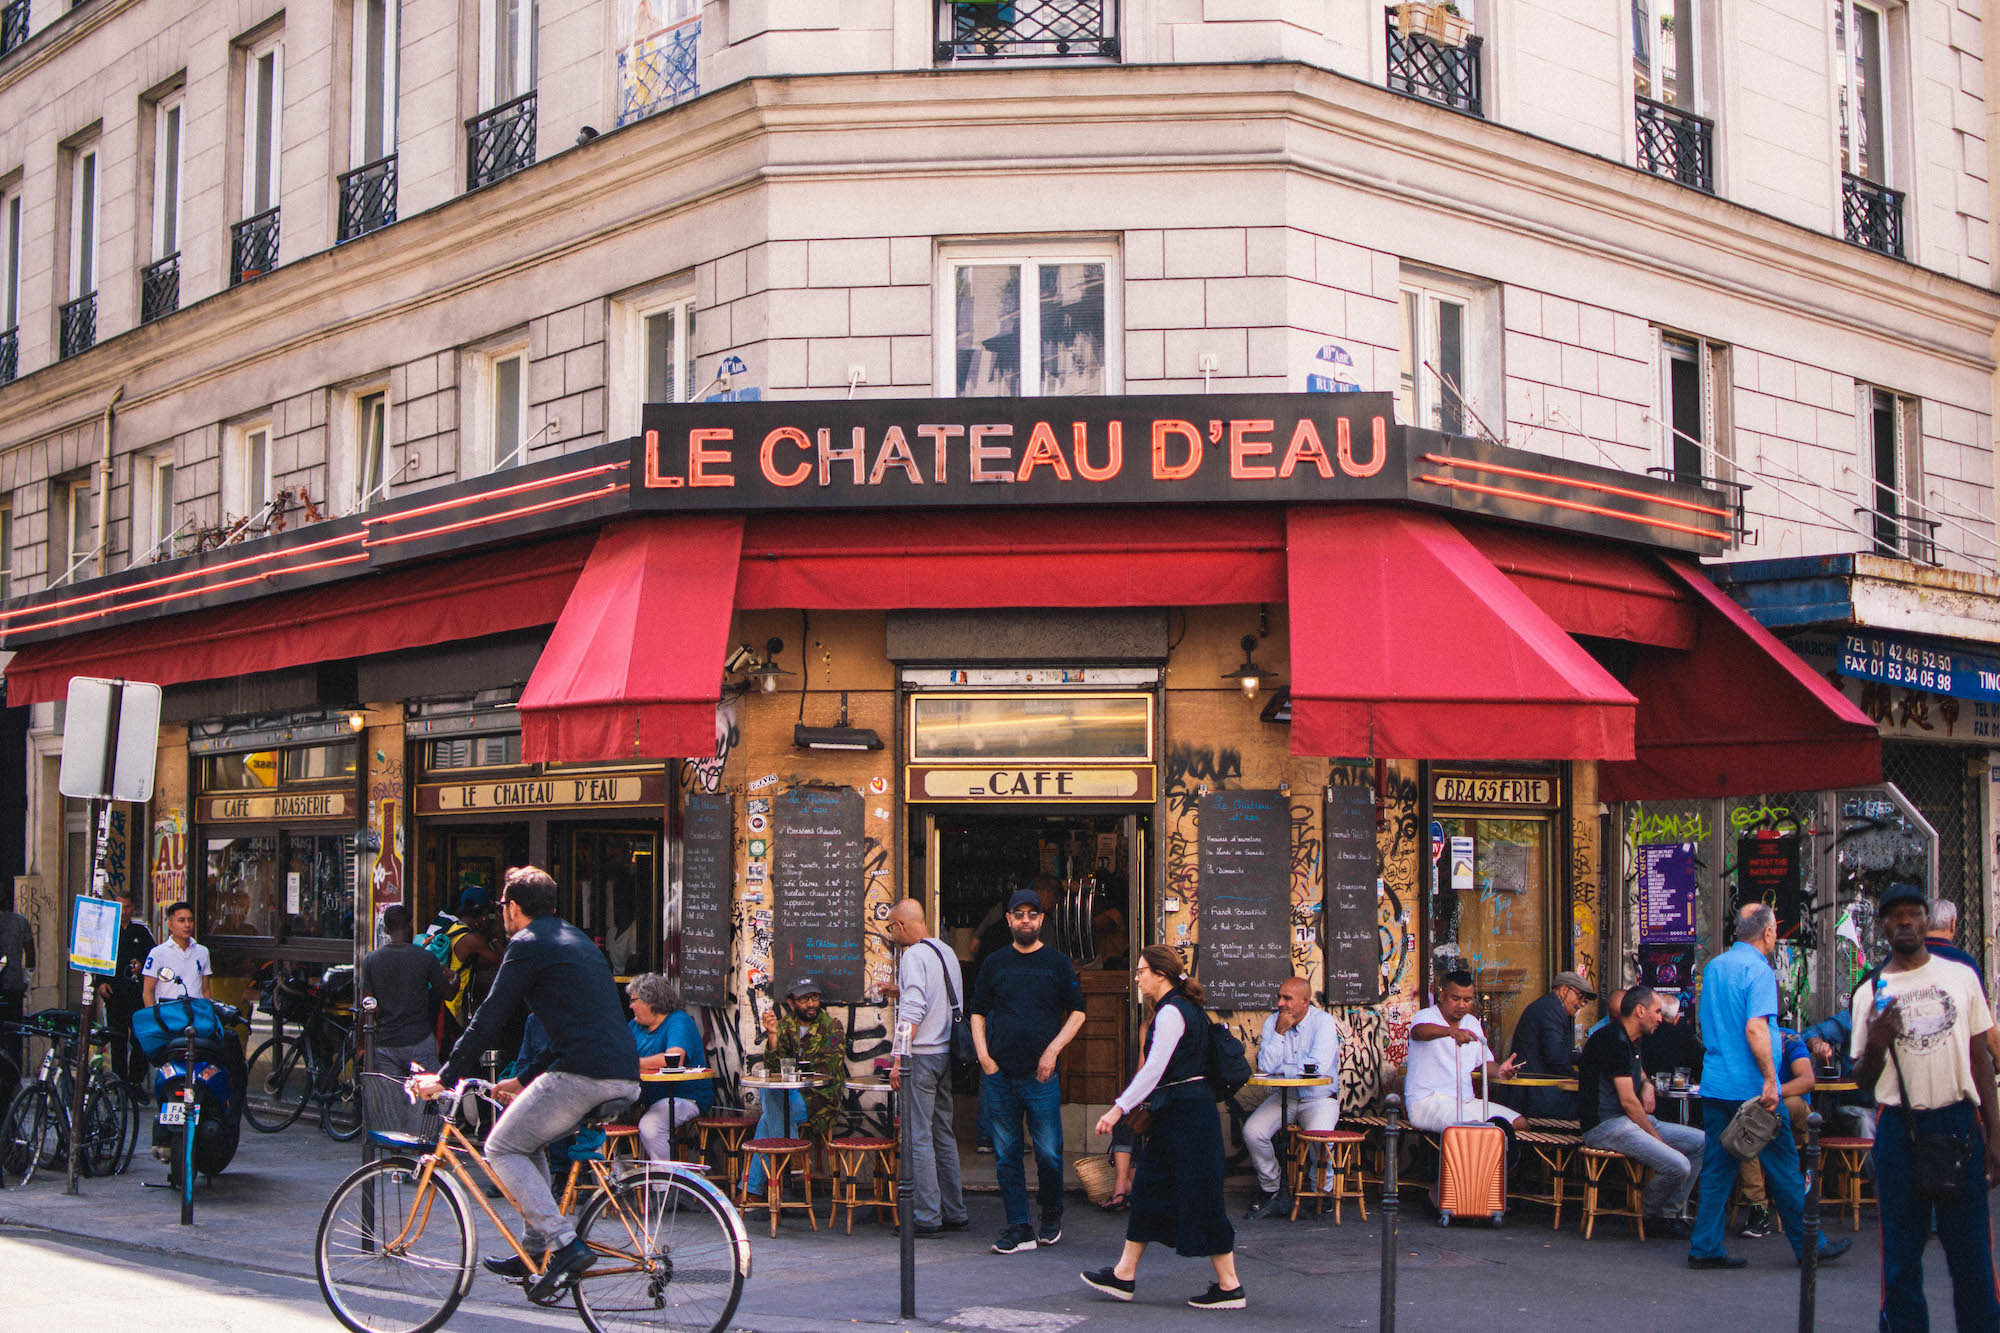 Outside a typical Parisian bistro called 'Le Chateau d'Eau' with a red awning and people sitting at tables outside.